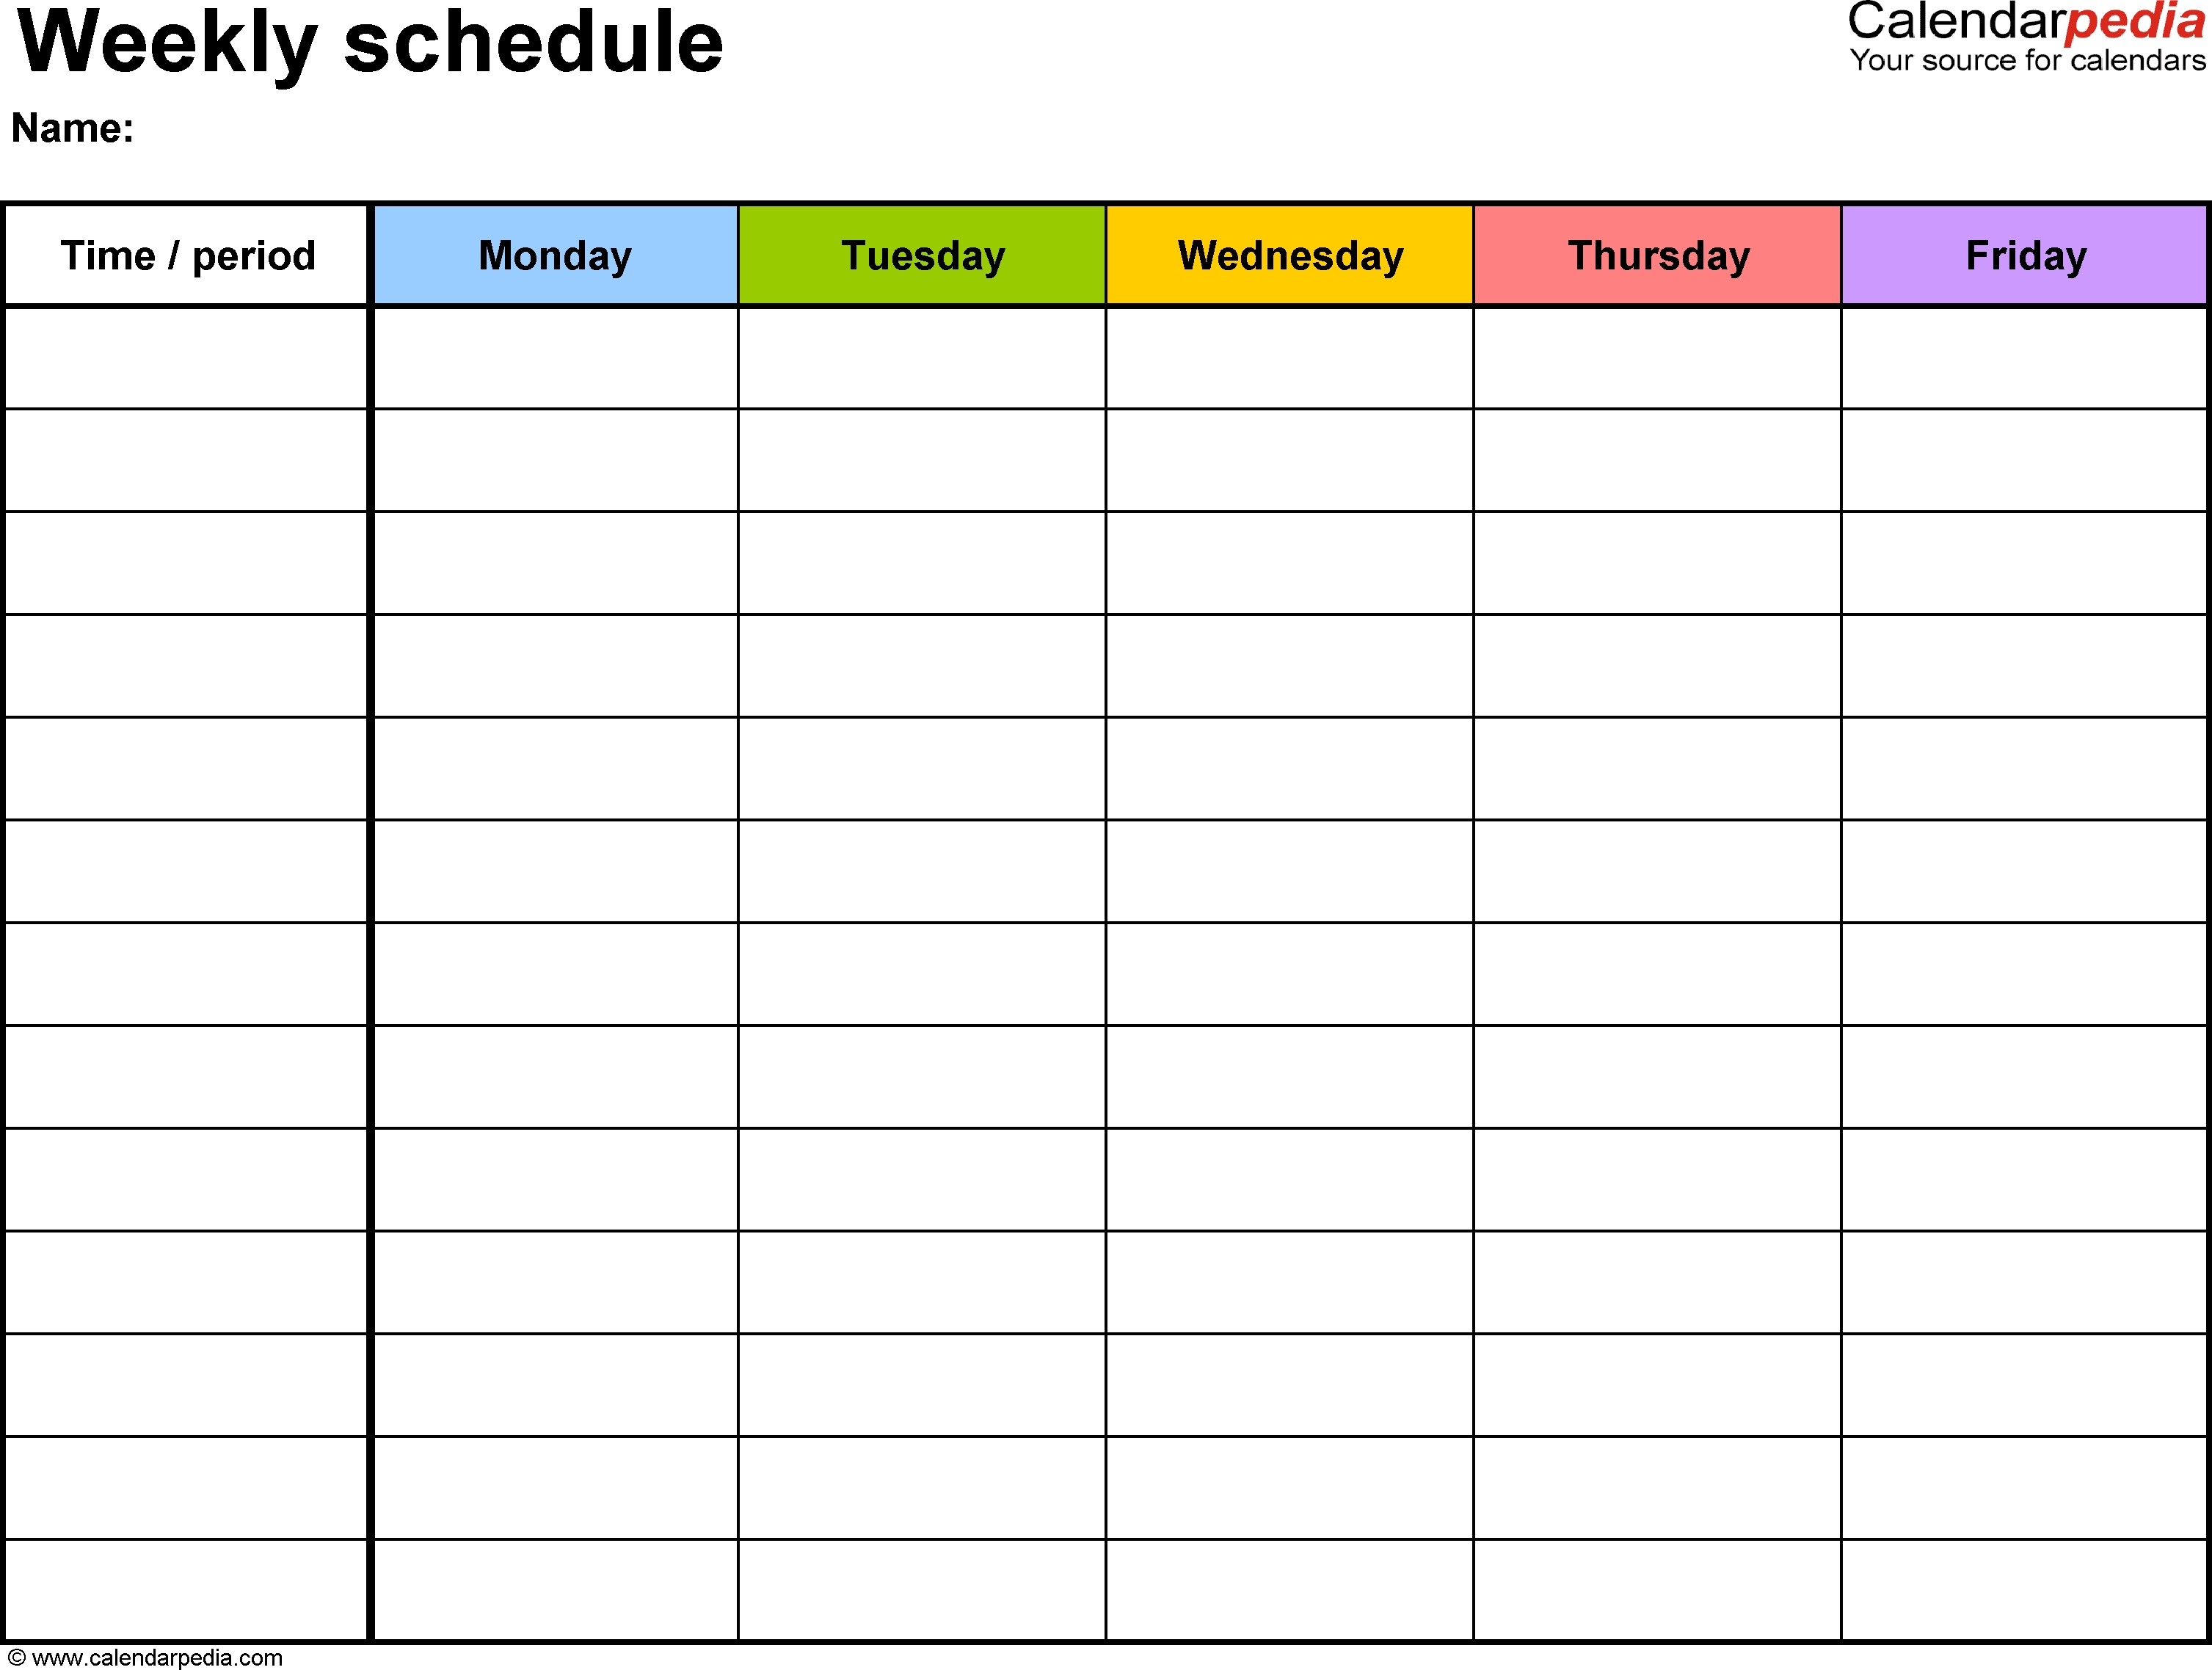 Free Weekly Schedule Templates For Word - 18 Templates inside Weekly Schedule Monday Through Friday